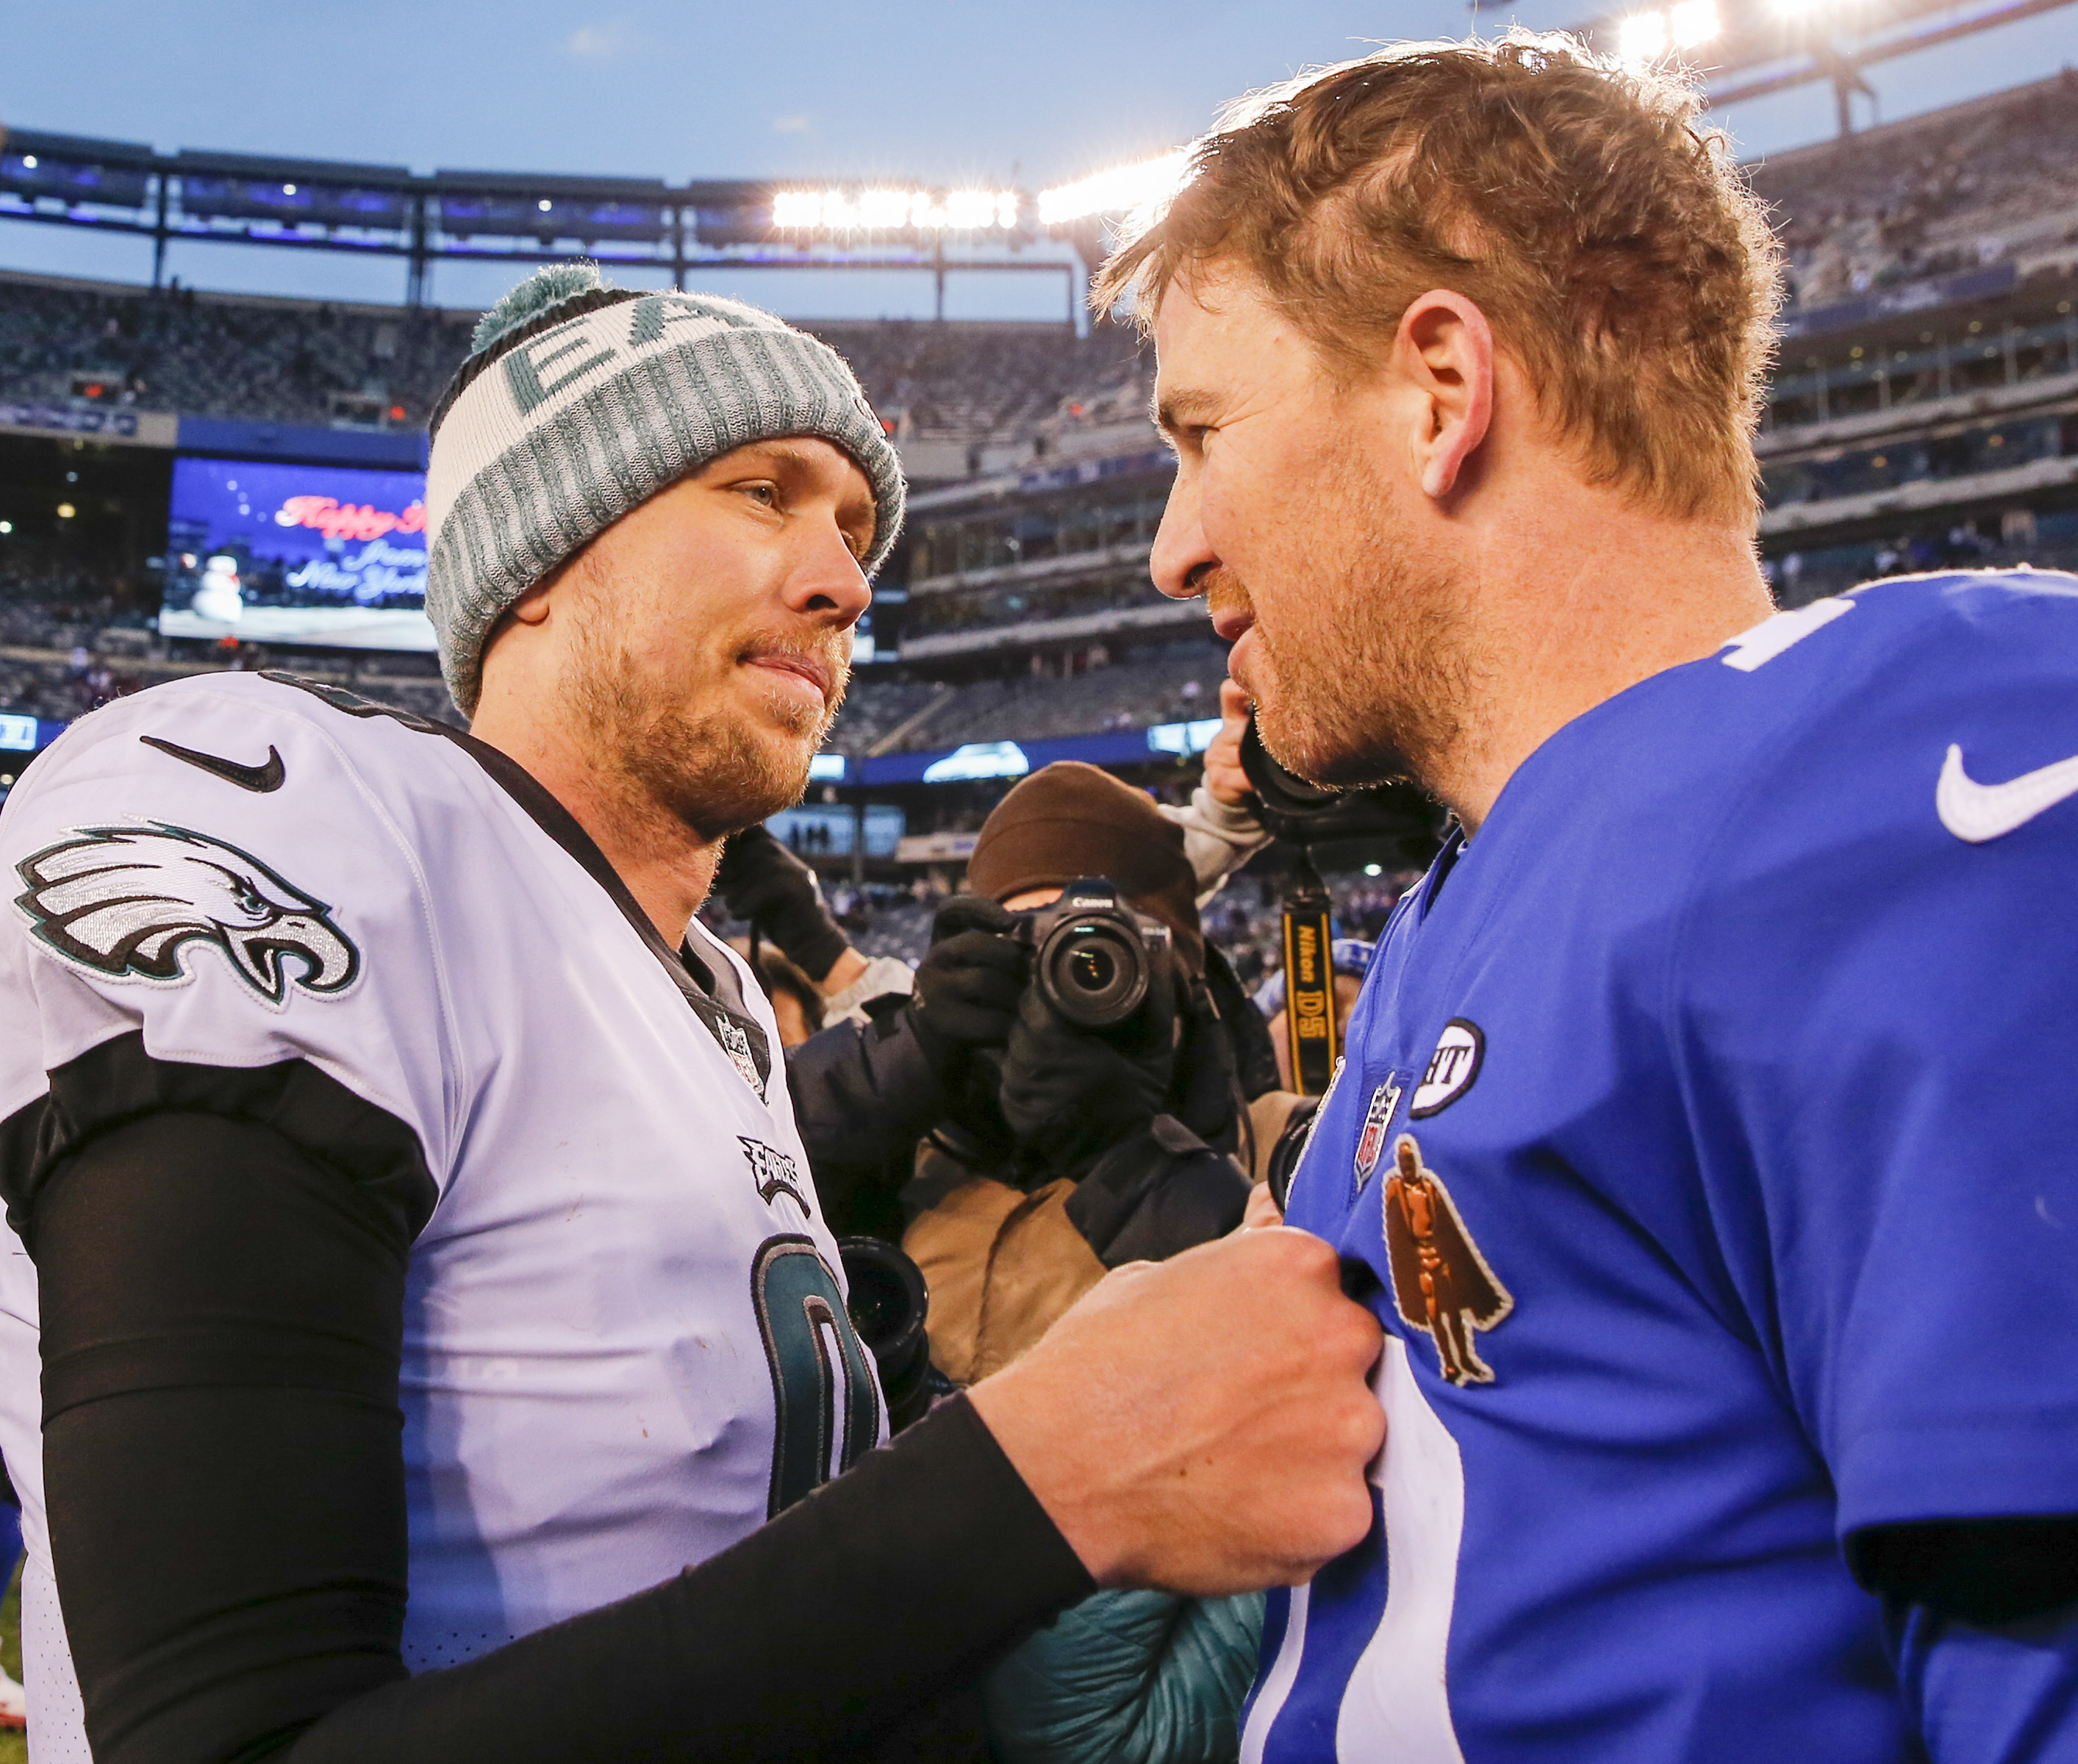 Eagles quarterback Nick Foles meets with Giants quarterback Eli Manning (right) after the Eagles beat the Giants.